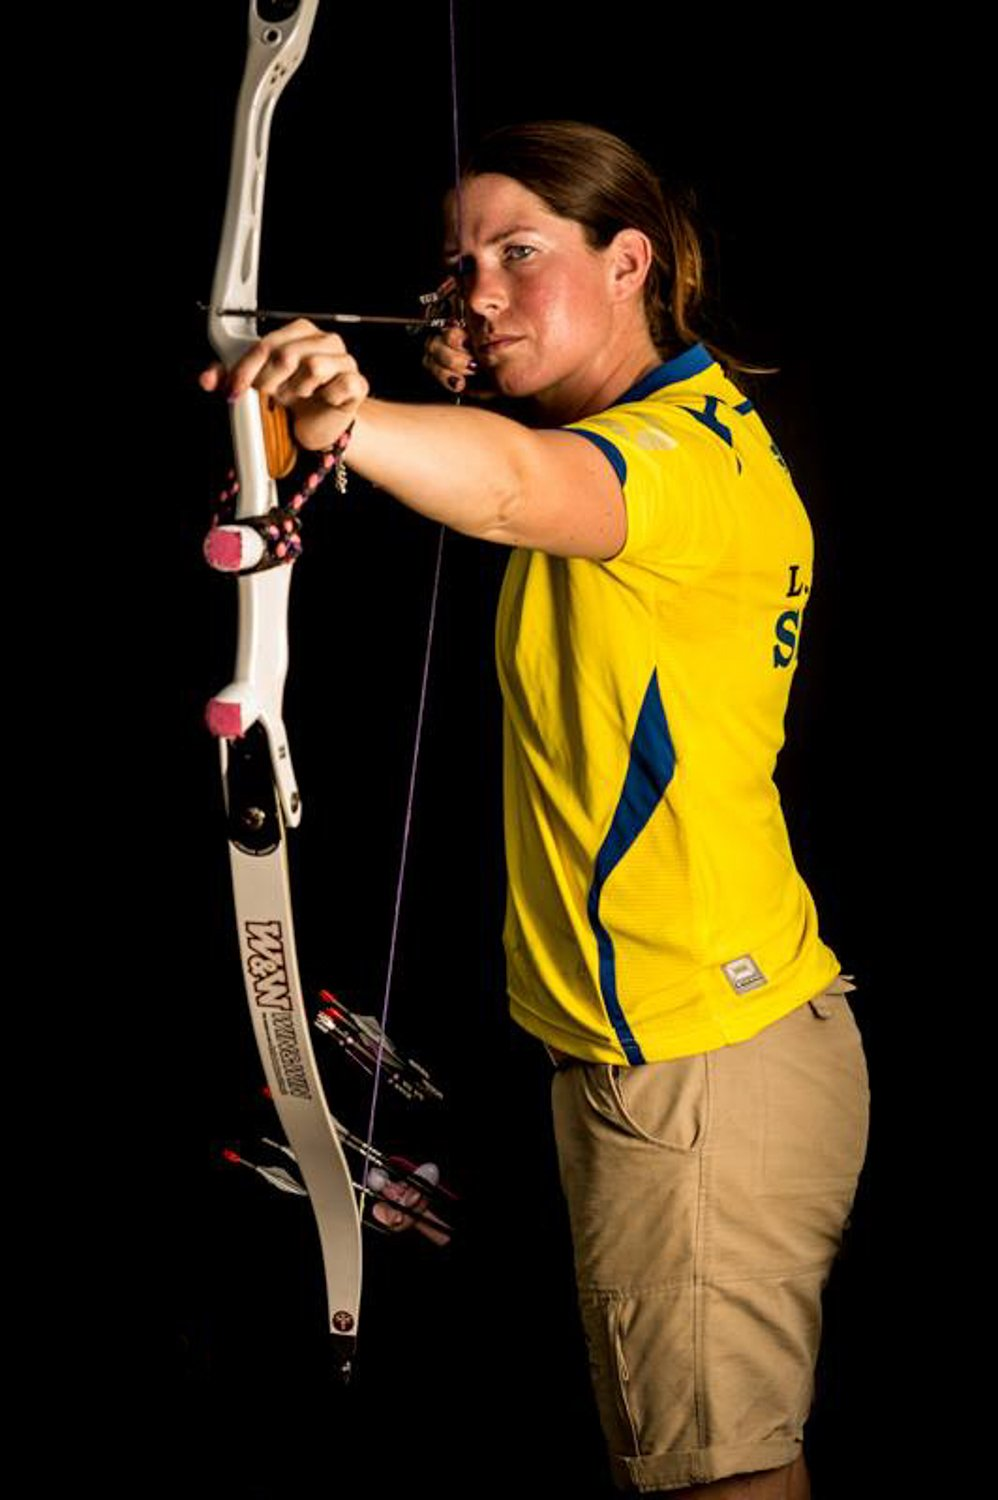 I AM THE WORLD GAMES Field Archery Campaign